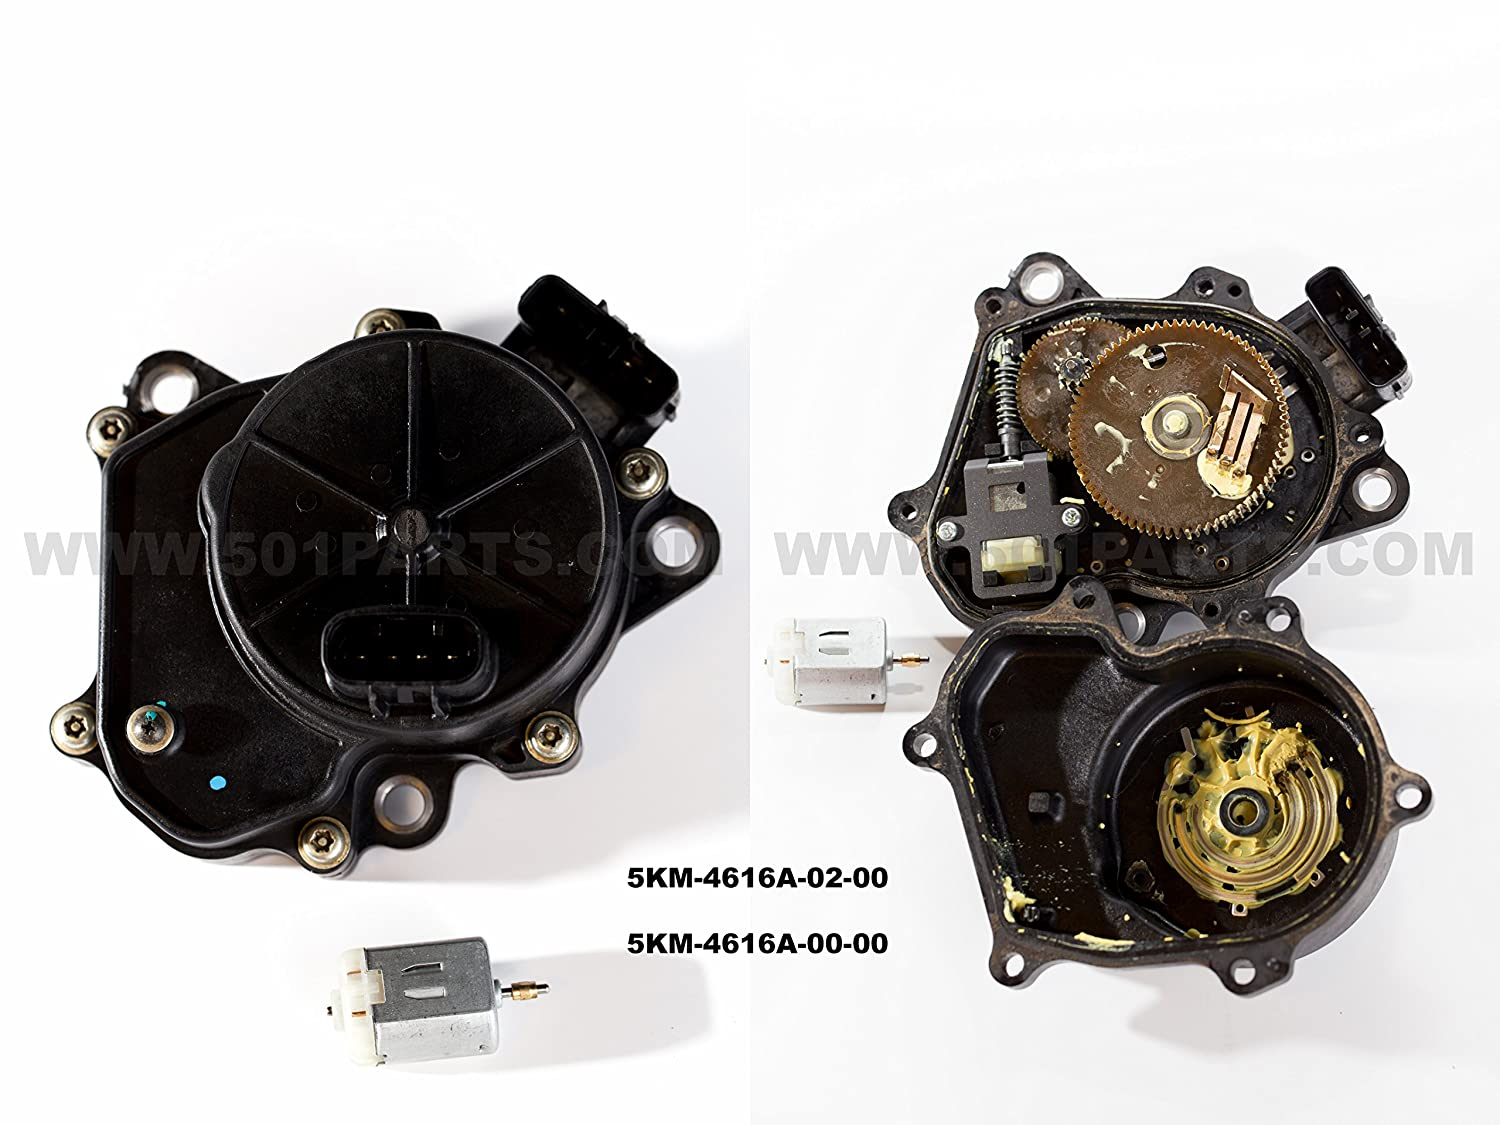 New Yamaha All Terrain Vehicle Four Wheel Drive Servo Polaris Ranger Xp 700 4x4 Rear Differential Solenoid Circuit Diagram Actuator Motor Replaces Parts 5km 4616a 02 00 And 5gh Fits 1998 2007